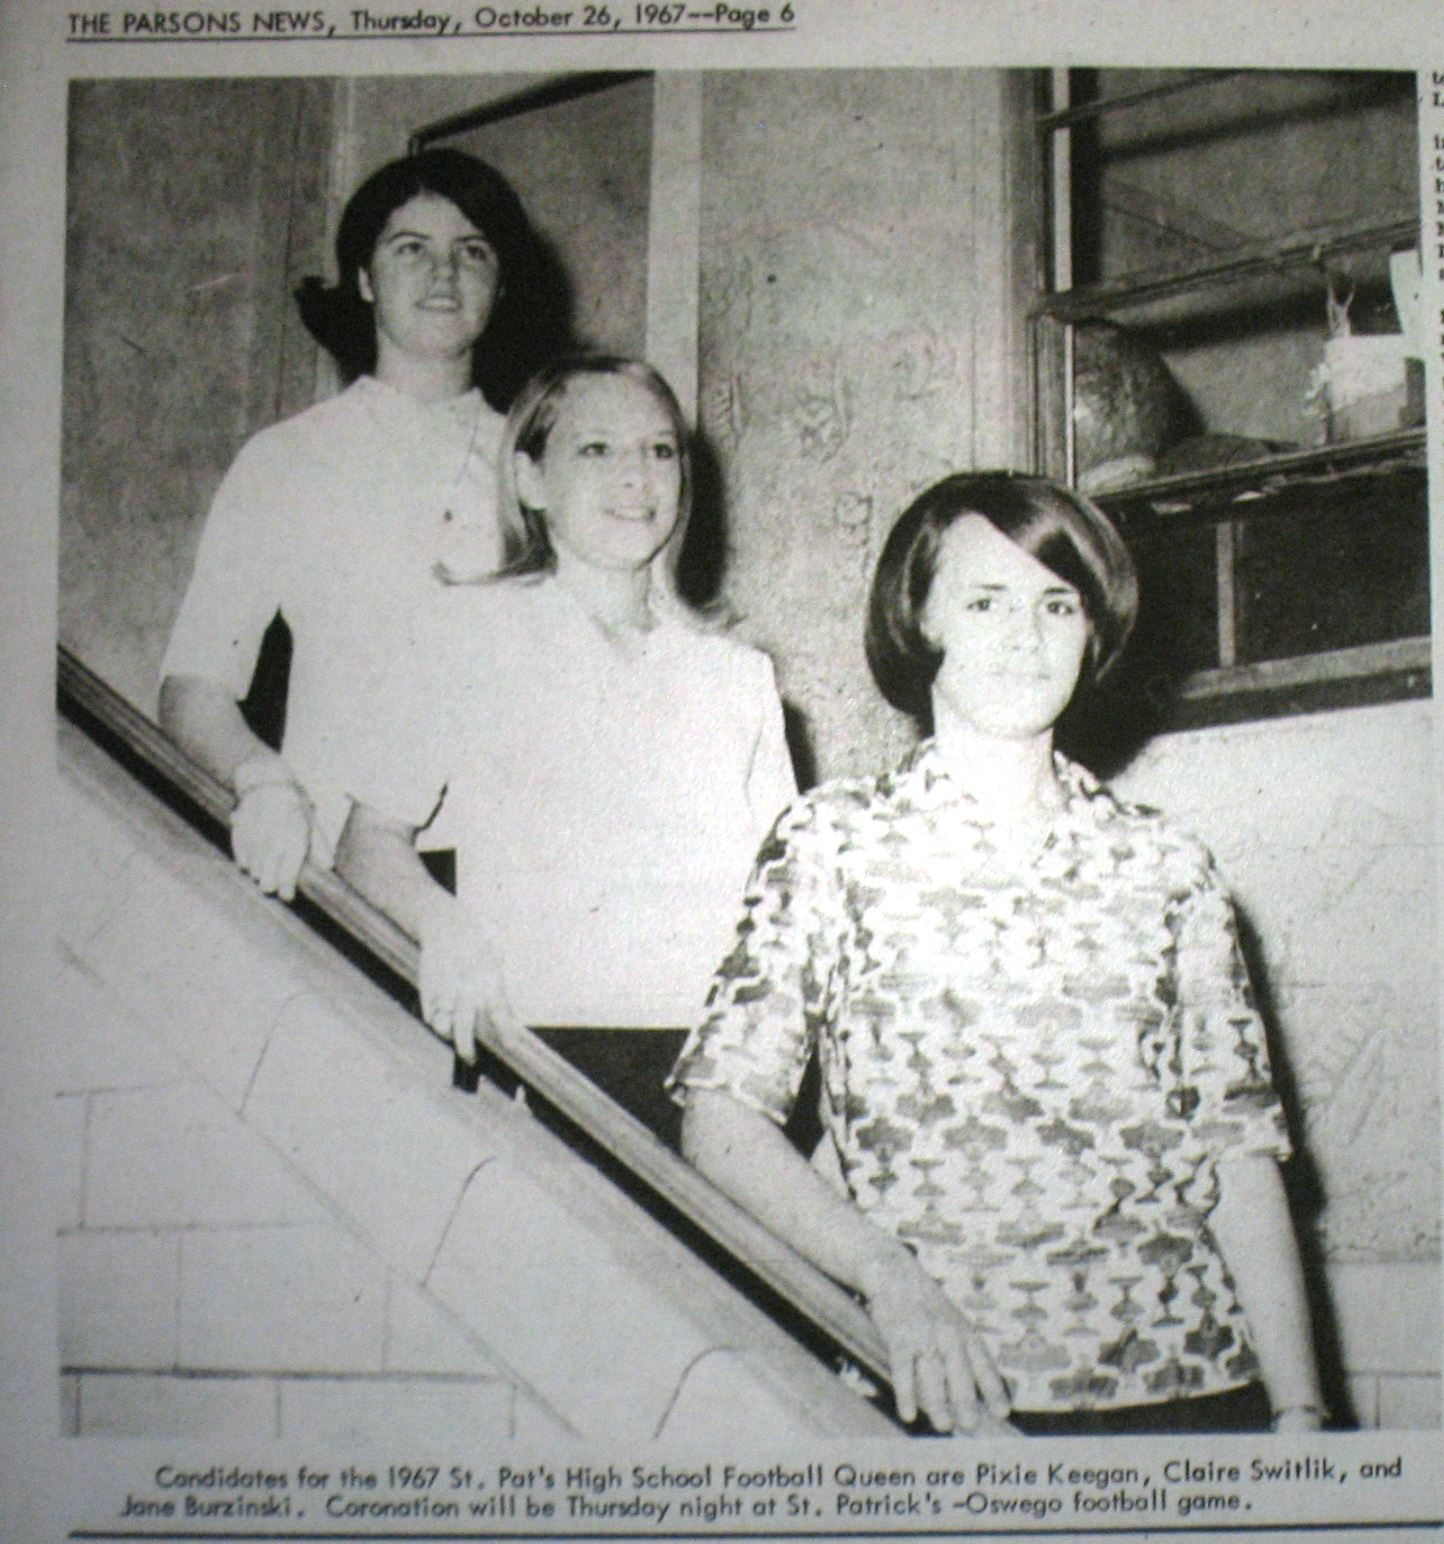 #65 St. Pats Football Queen Candidates 1967